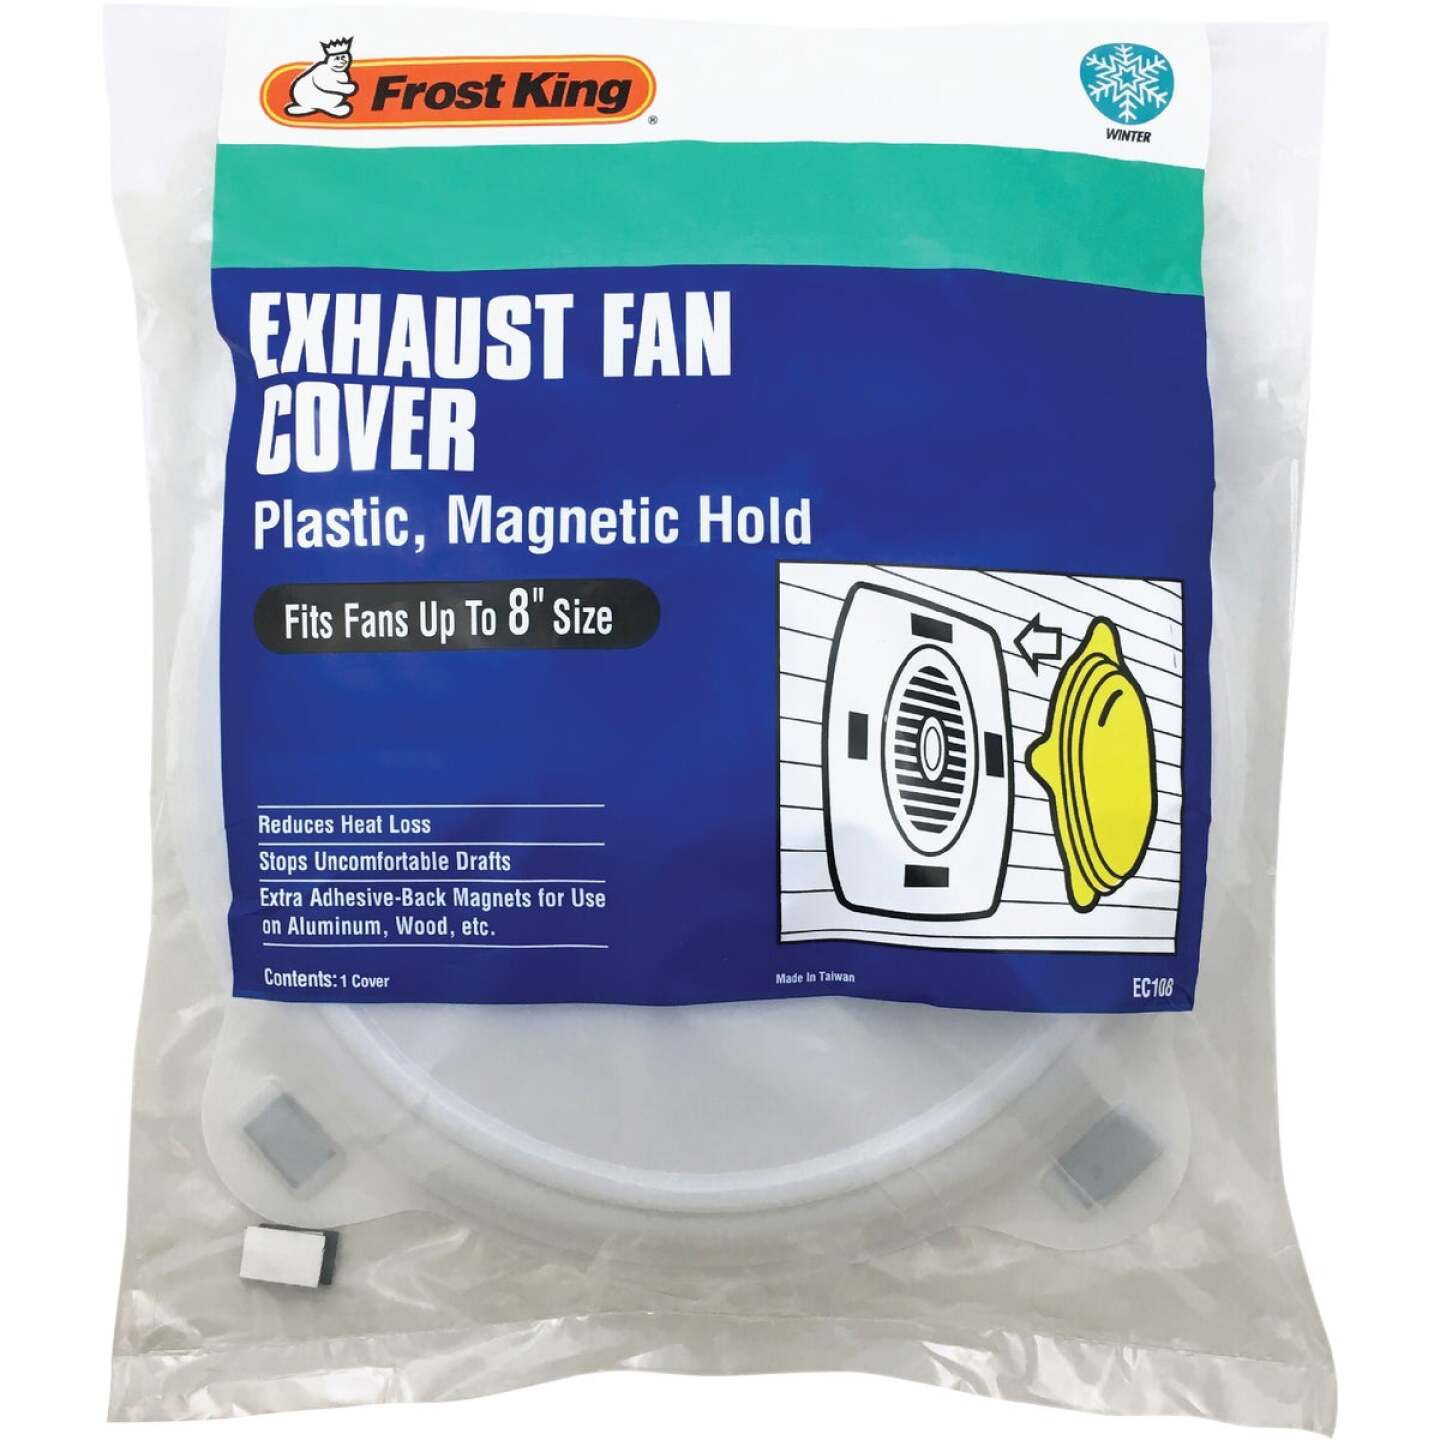 Frost King 10-1/4 In. Dia. White Plastic Exhaust Fan Cover Image 1